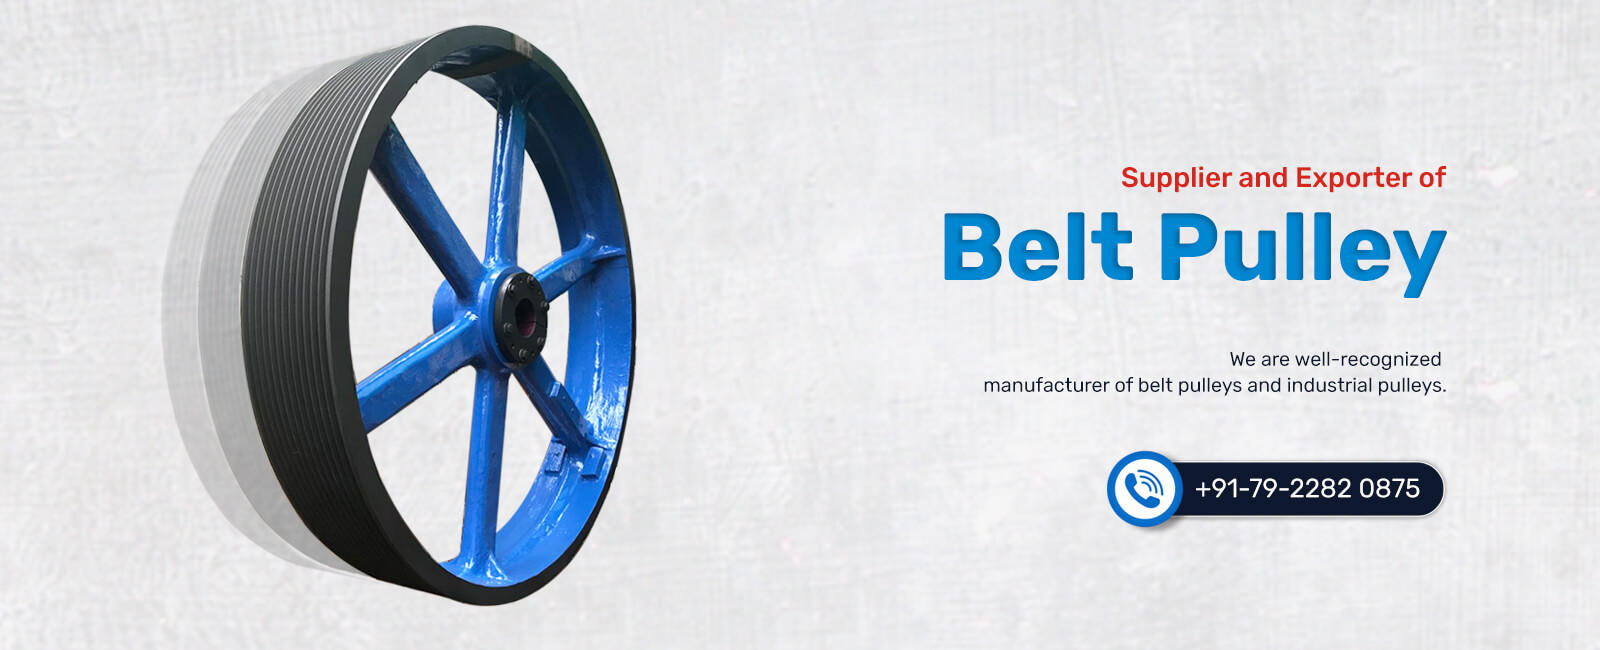 Belt pulley manufacturers in india, uk, rajkot, ahmedabad, gujarat, ludhiana, pune, delhi, china, coimbatore, south africa, mumbai, malaysia,